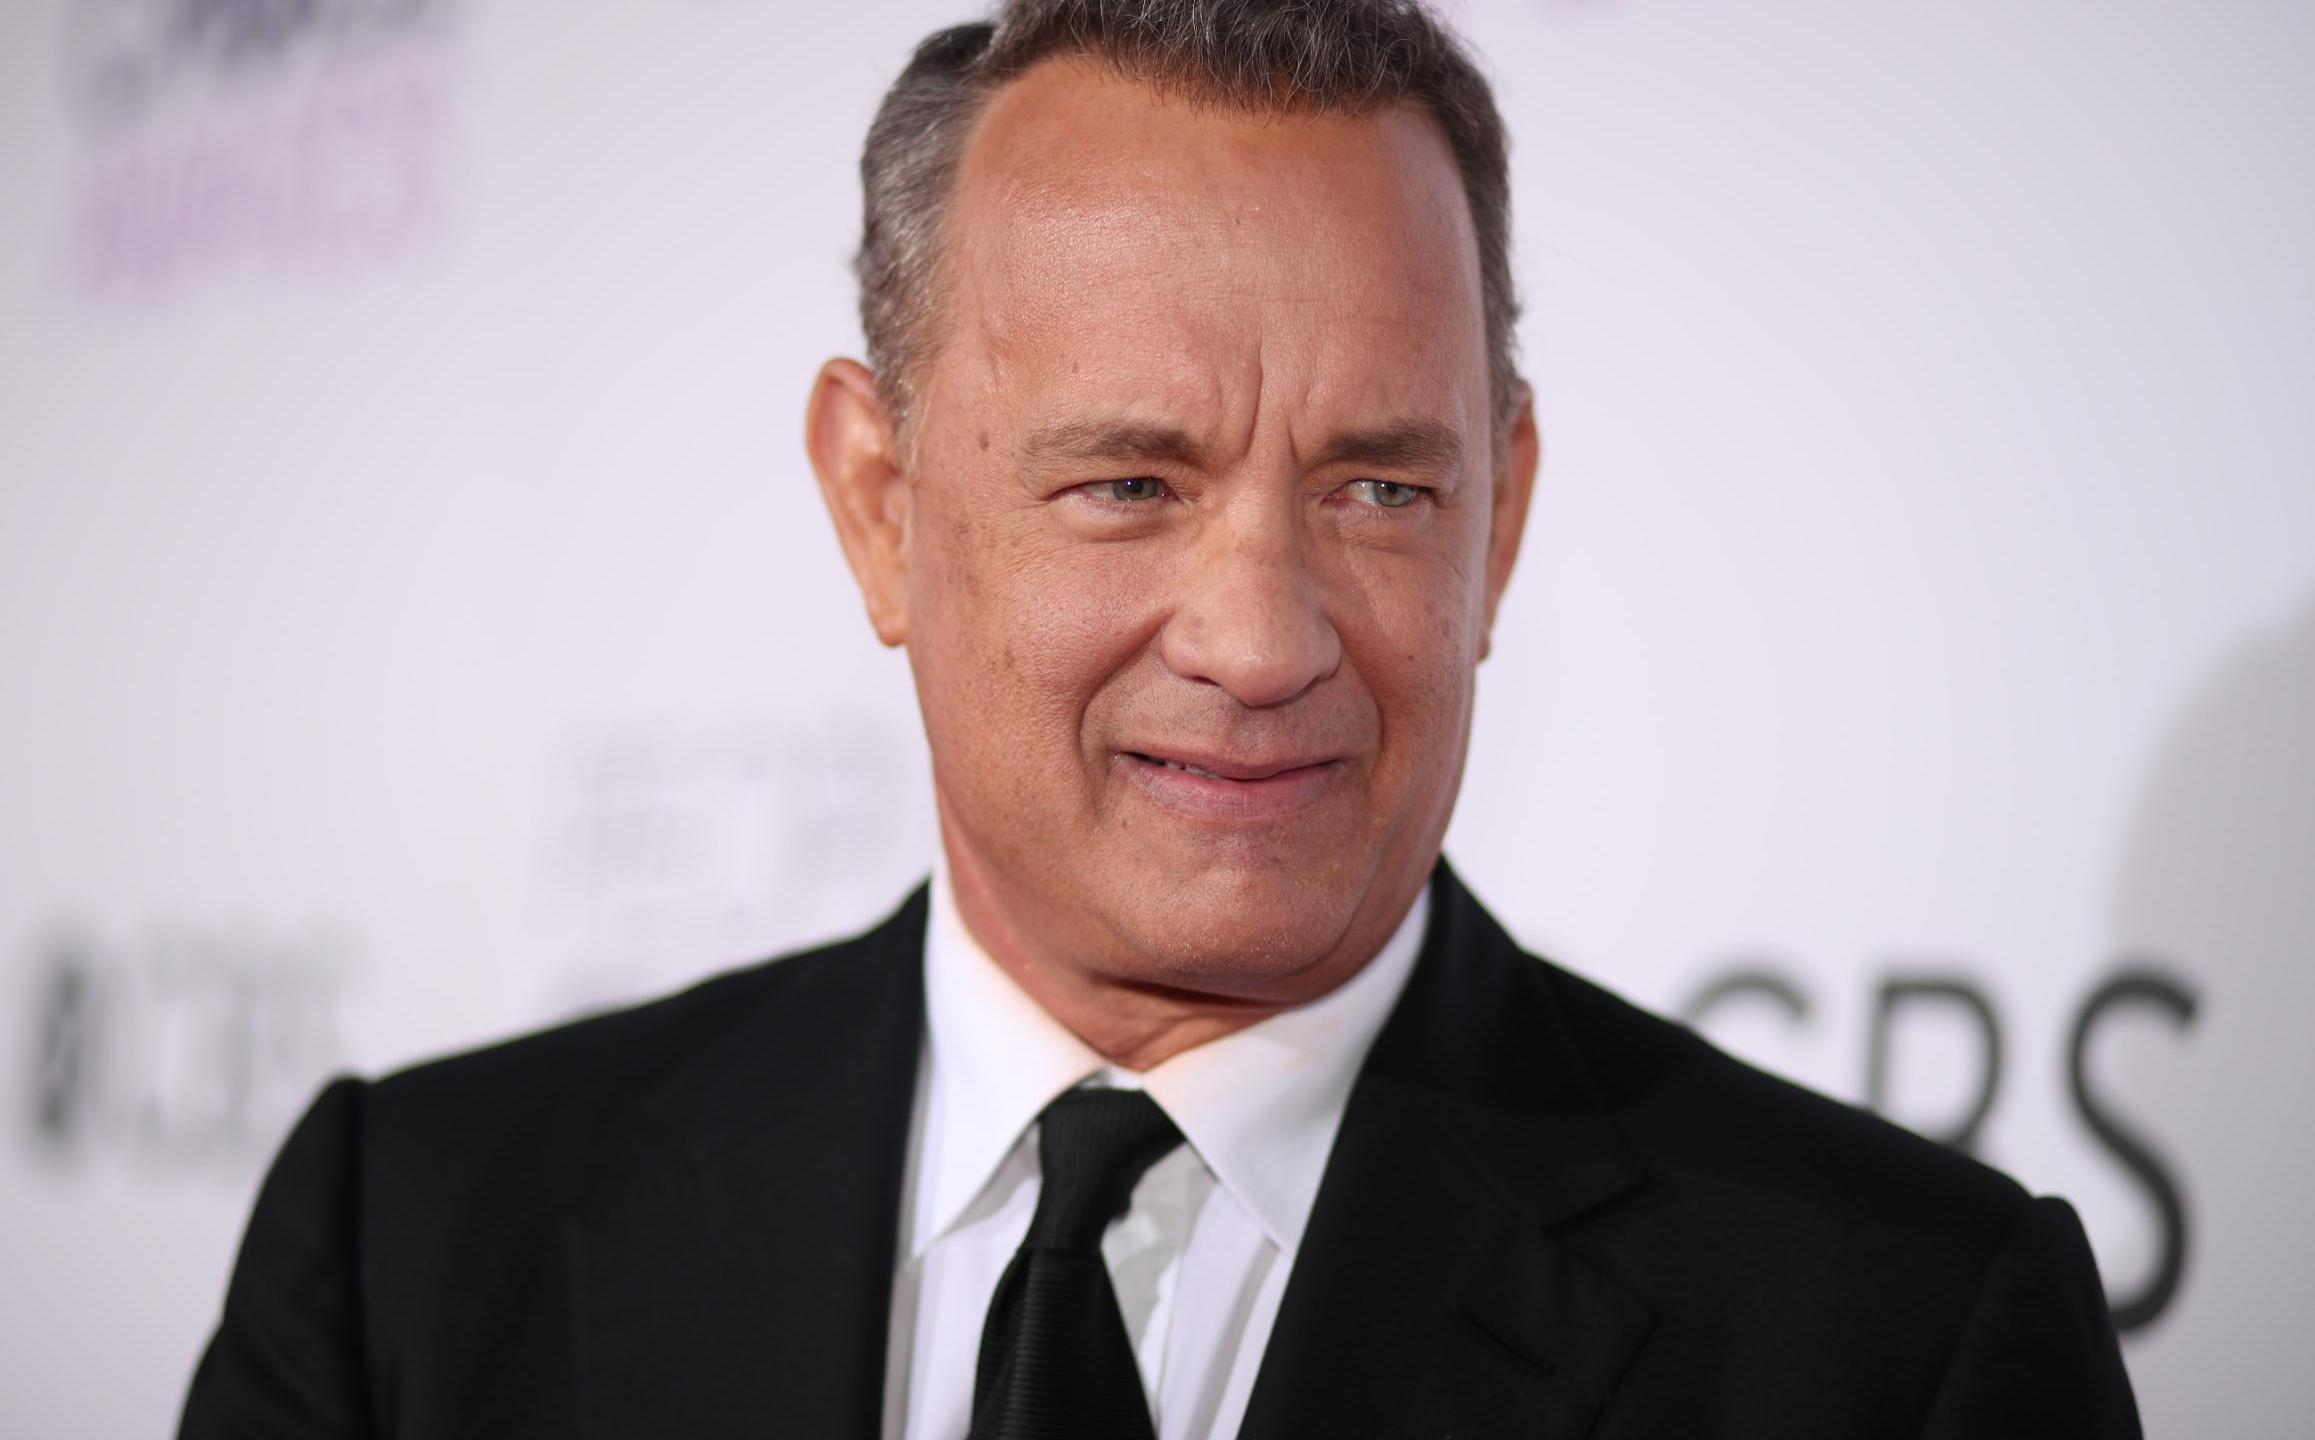 Tom Hanks is seen in a file photo. (Christopher Polk/Getty Images North America)